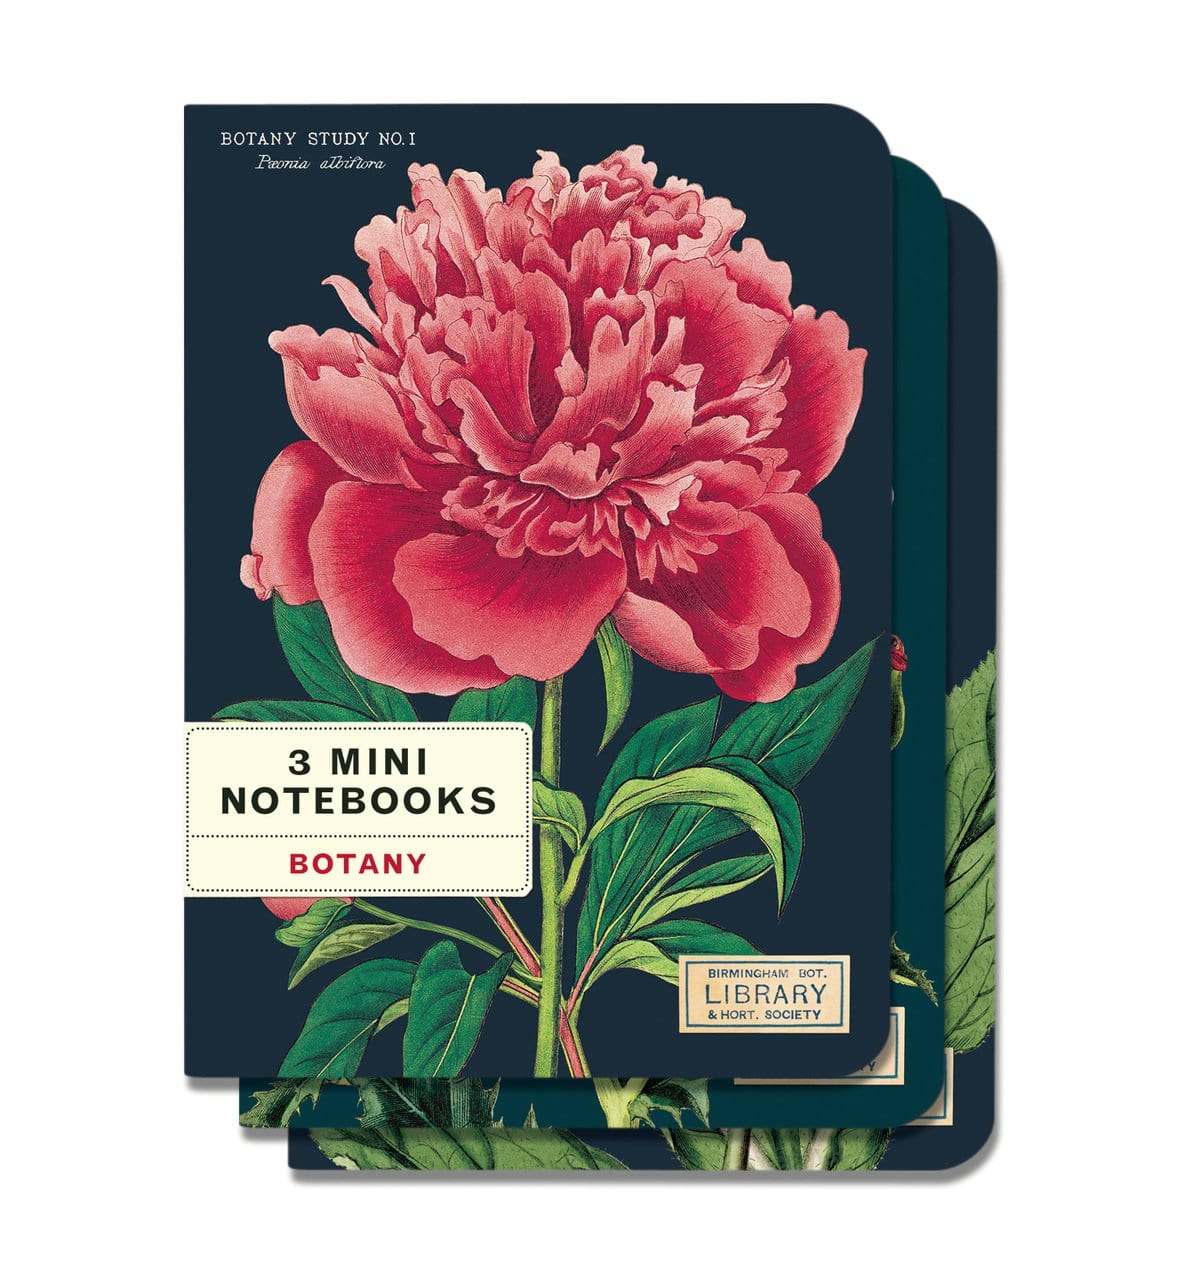 Botany Mini Notebooks - Set of 3